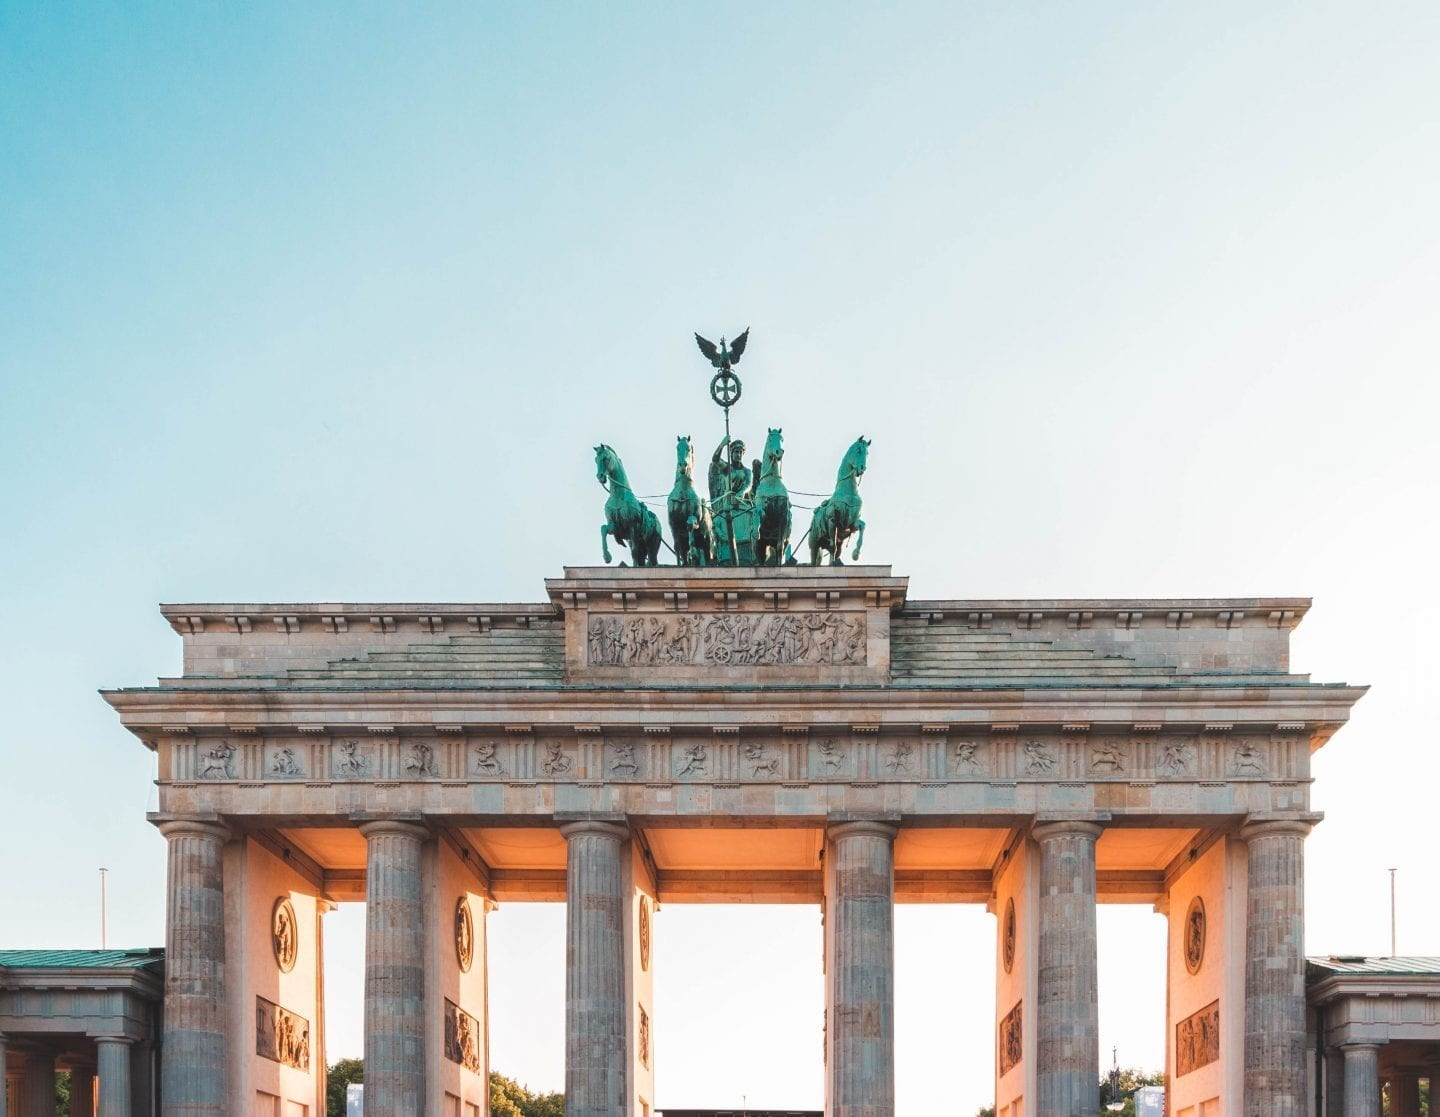 How To Travel Europe on a Budget: A Complete Guide | Wanderlust Movement | #budgettravel #europe #traveltips #eurotrip #europeonabudget